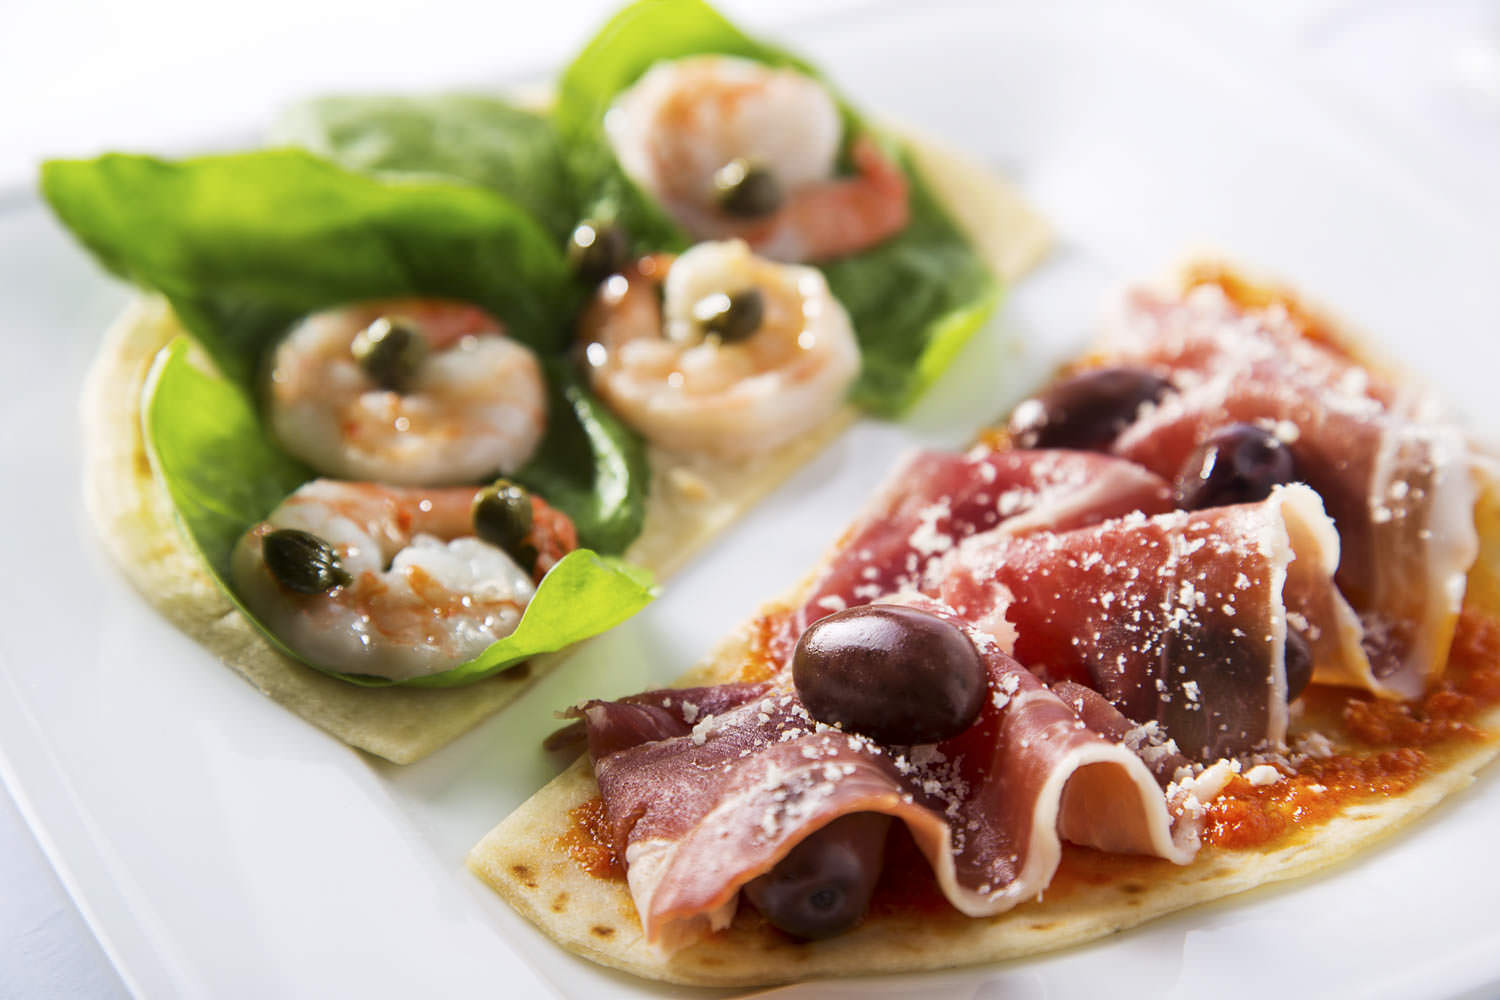 Pita bread pizza for a diet program | Ho Chi Minh Food Photography